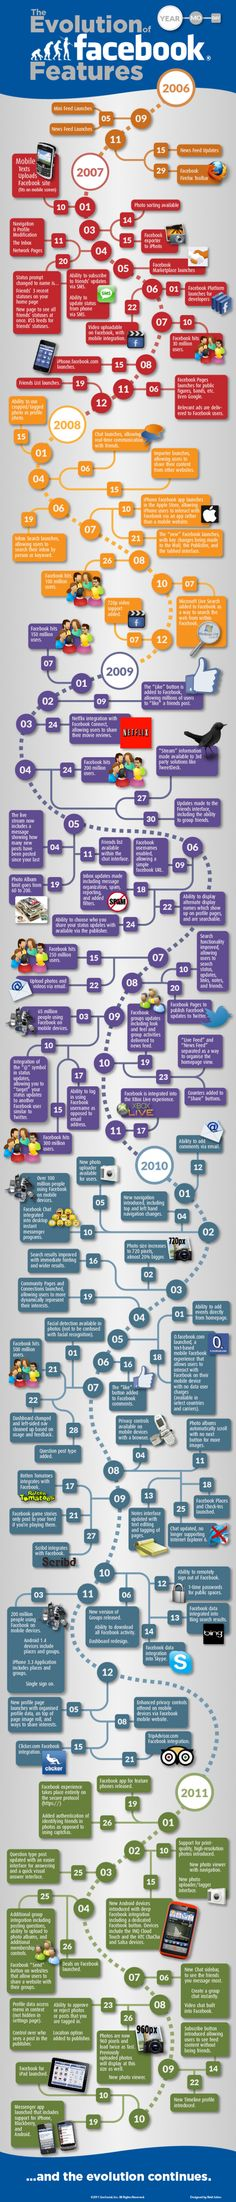 The Evolution of Facebook Features - Amazing that someone actually put this together! How far it's come in a short while!